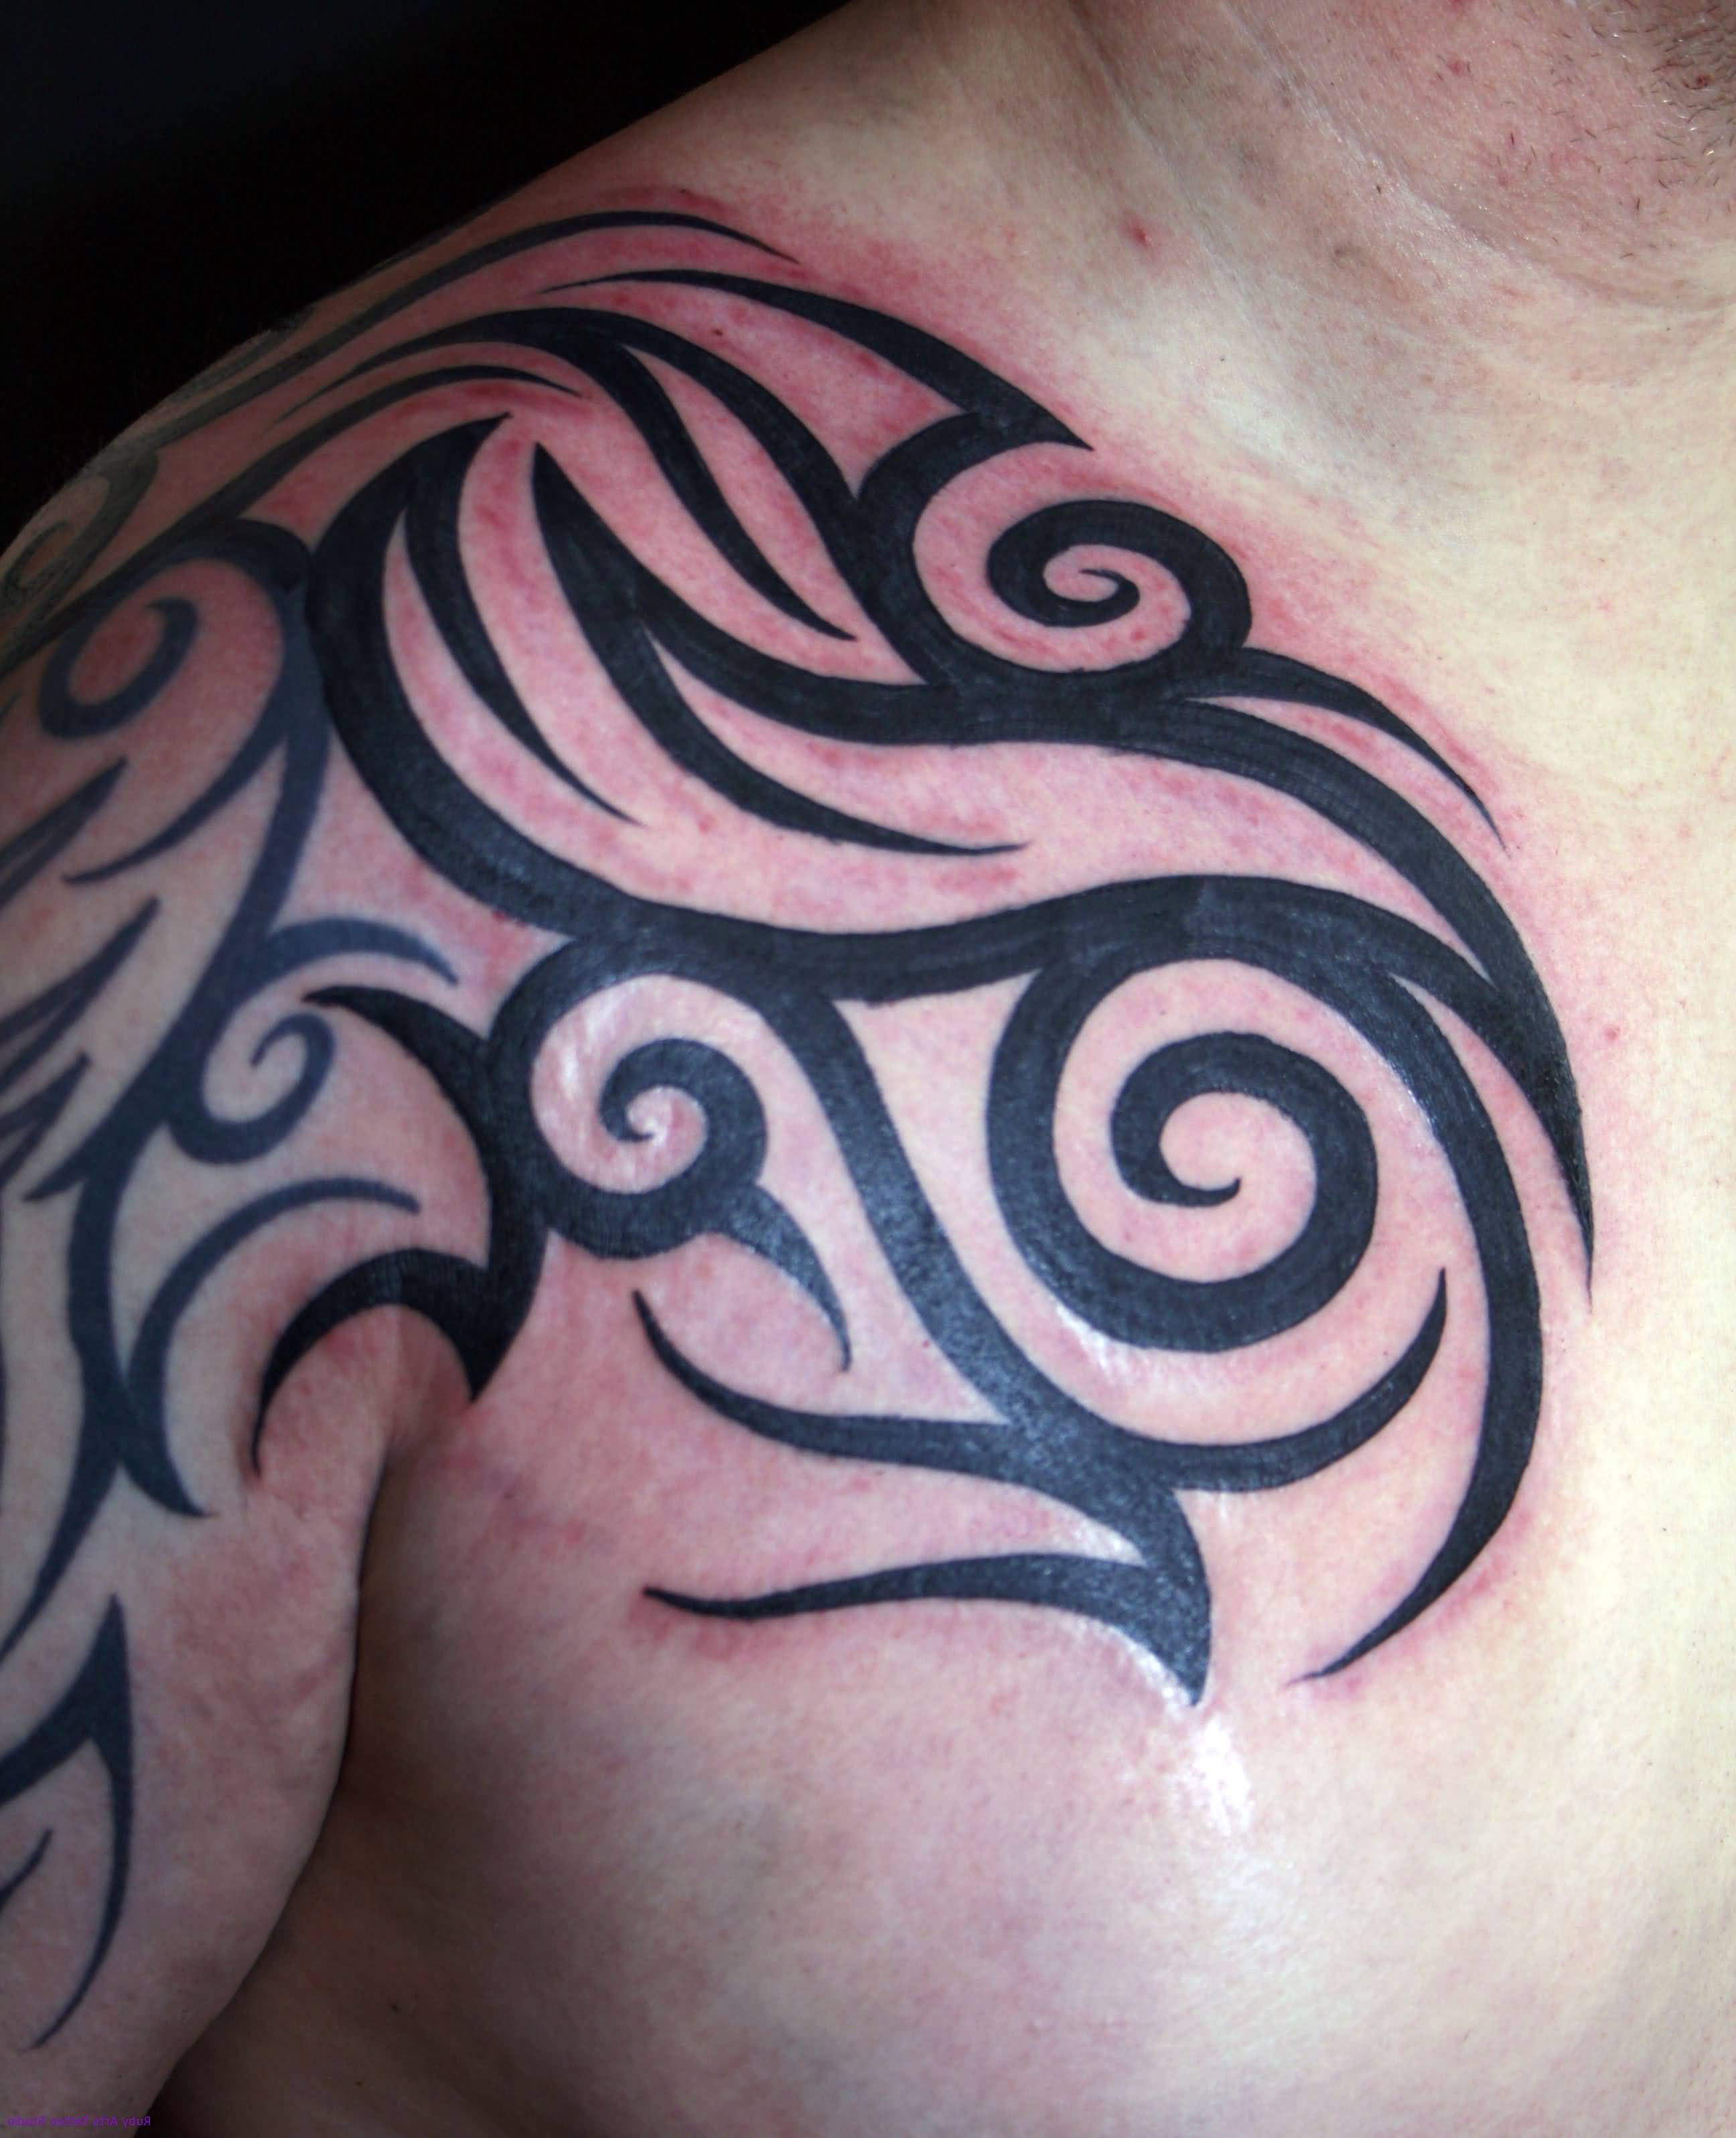 Tribal Tatoo On Shoulder : tribal, tatoo, shoulder, Front, Shoulder, Tribal, Tattoo